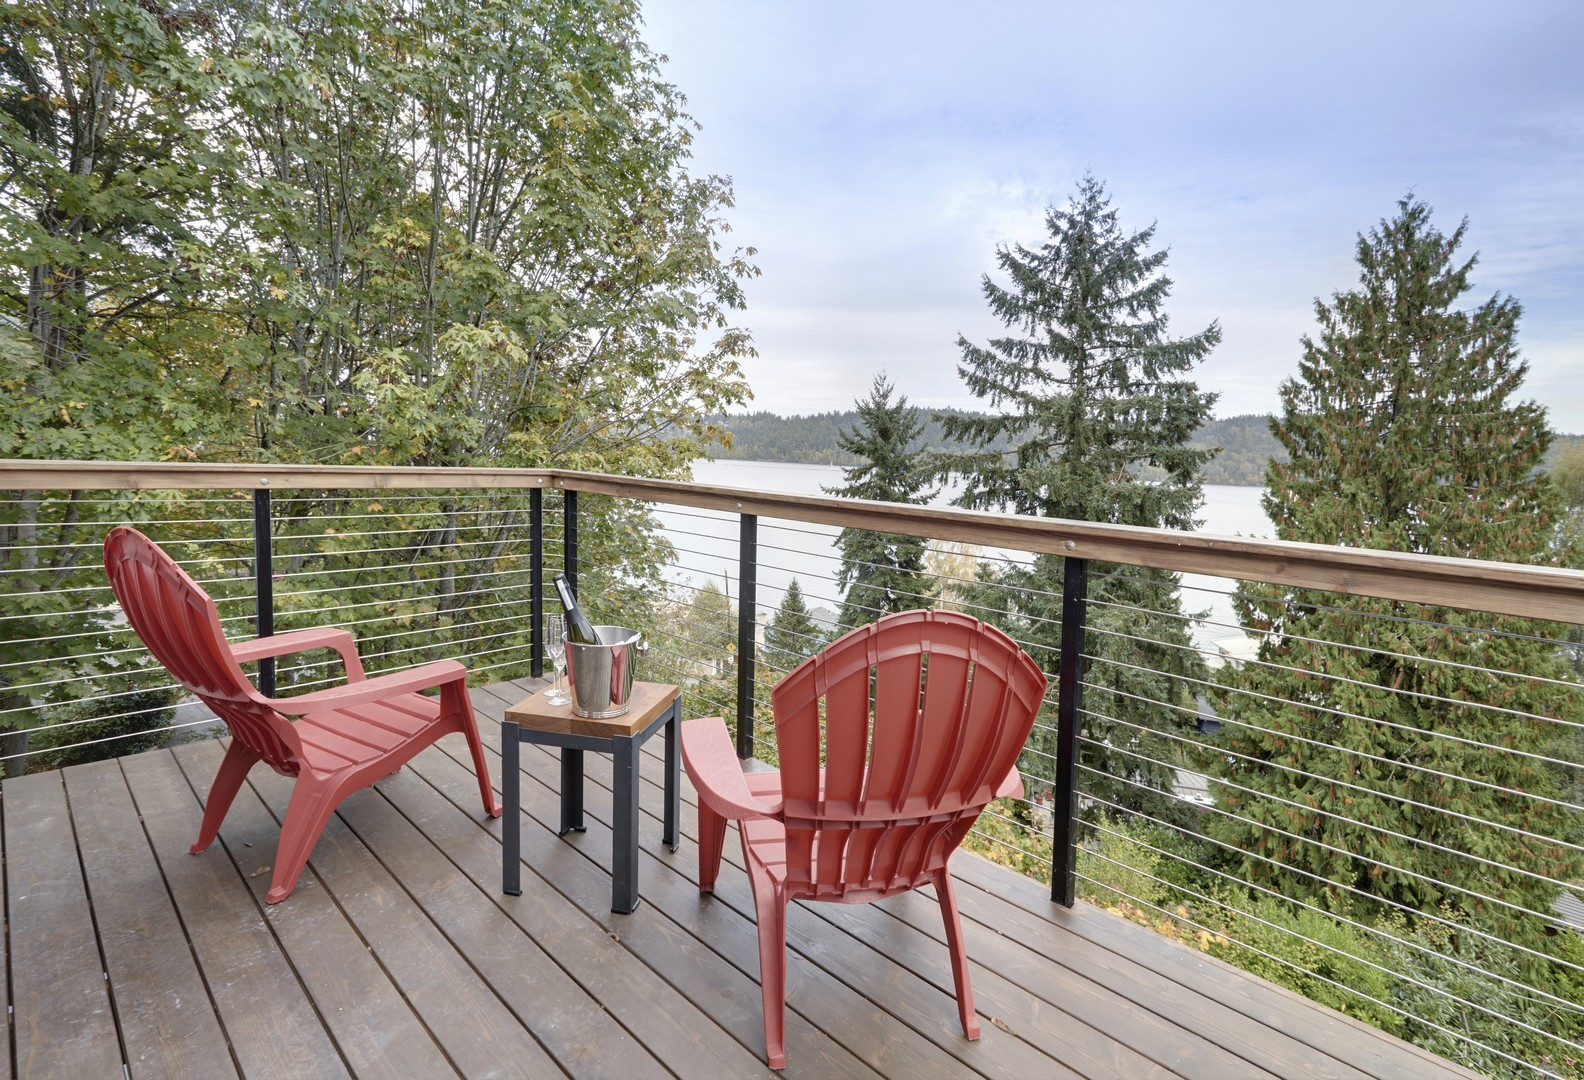 Single Family Home for Sale at Lakeside in Cedar Park 13722 42nd Ave NE Seattle, Washington 98125 United States